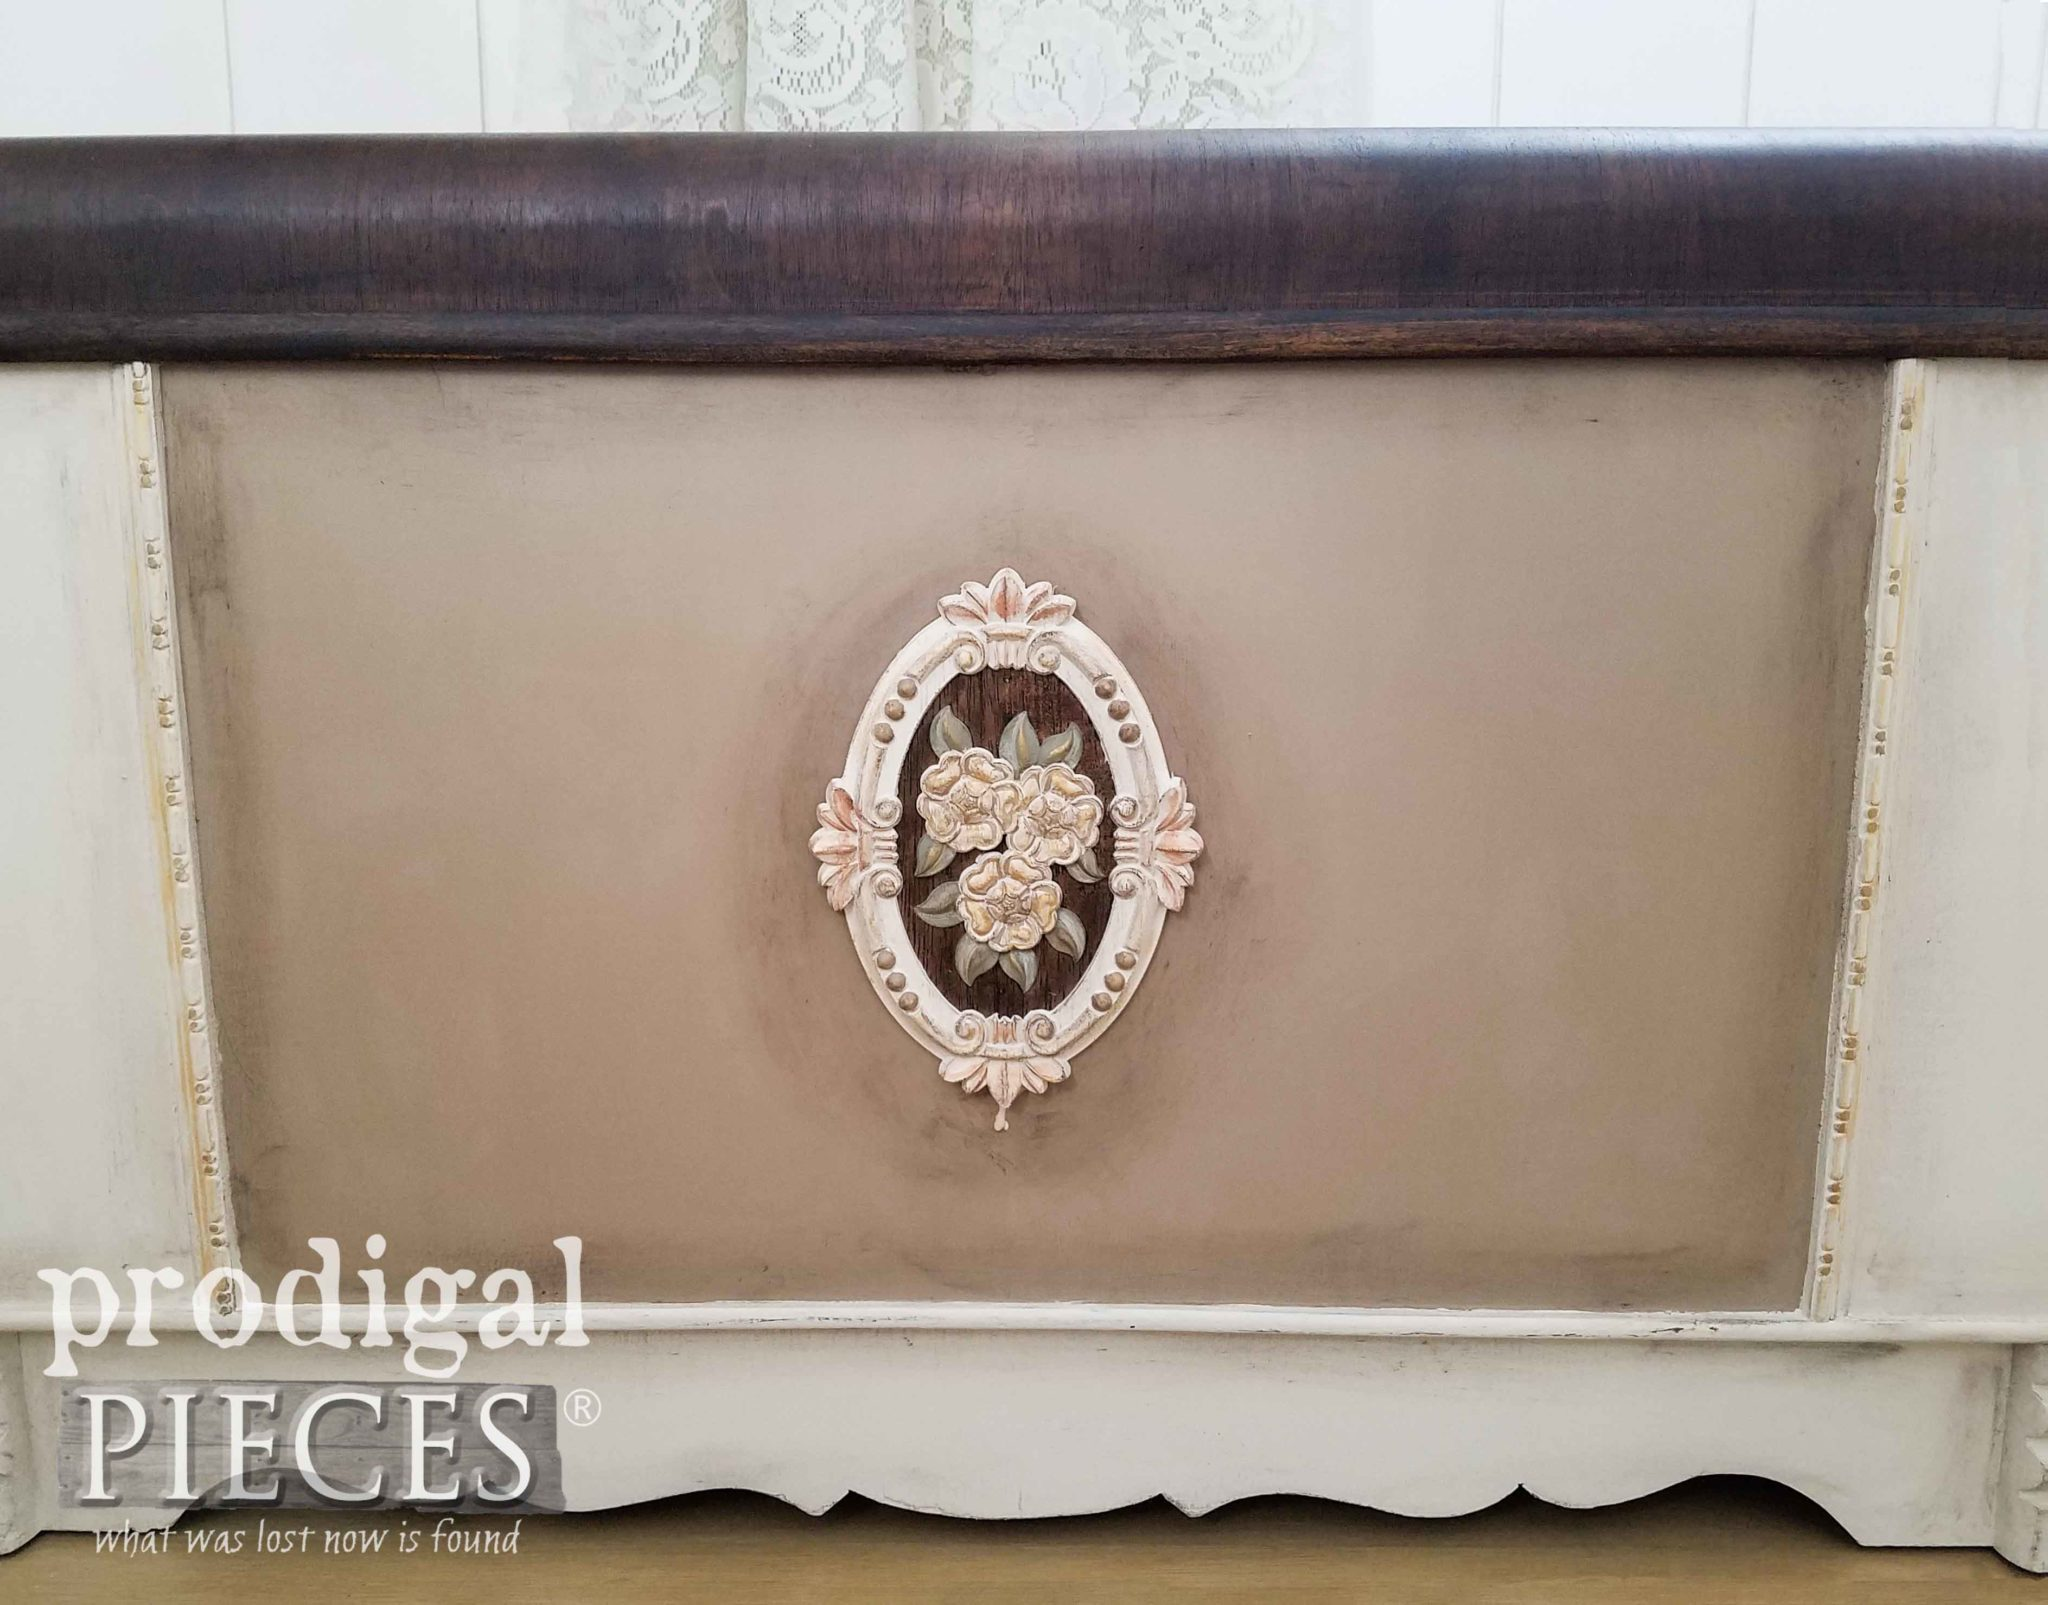 Vintage Waterfall Hope Chest Given New Life with Paint & Stain by Larissa of Prodigal Pieces | prodigalpieces.com